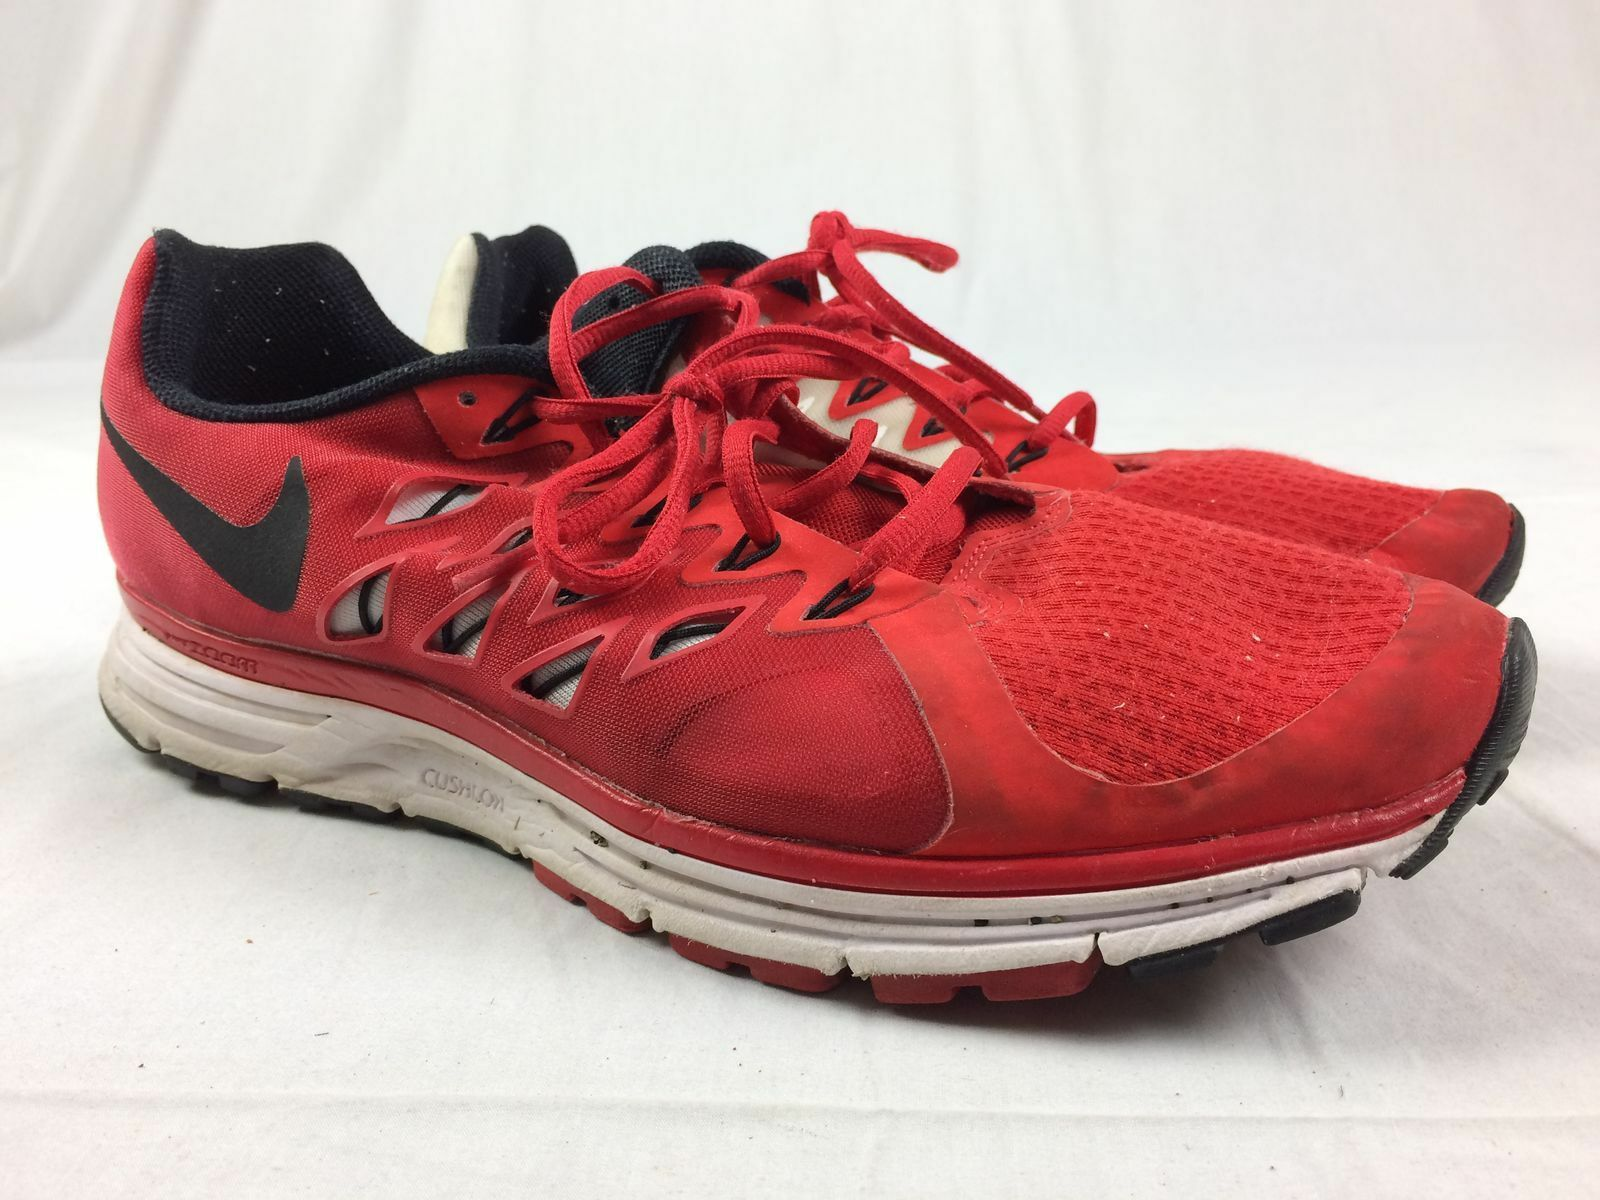 Nike Vomero 9 - Red/White Running, Cross Training (Men's 12.5) - Used